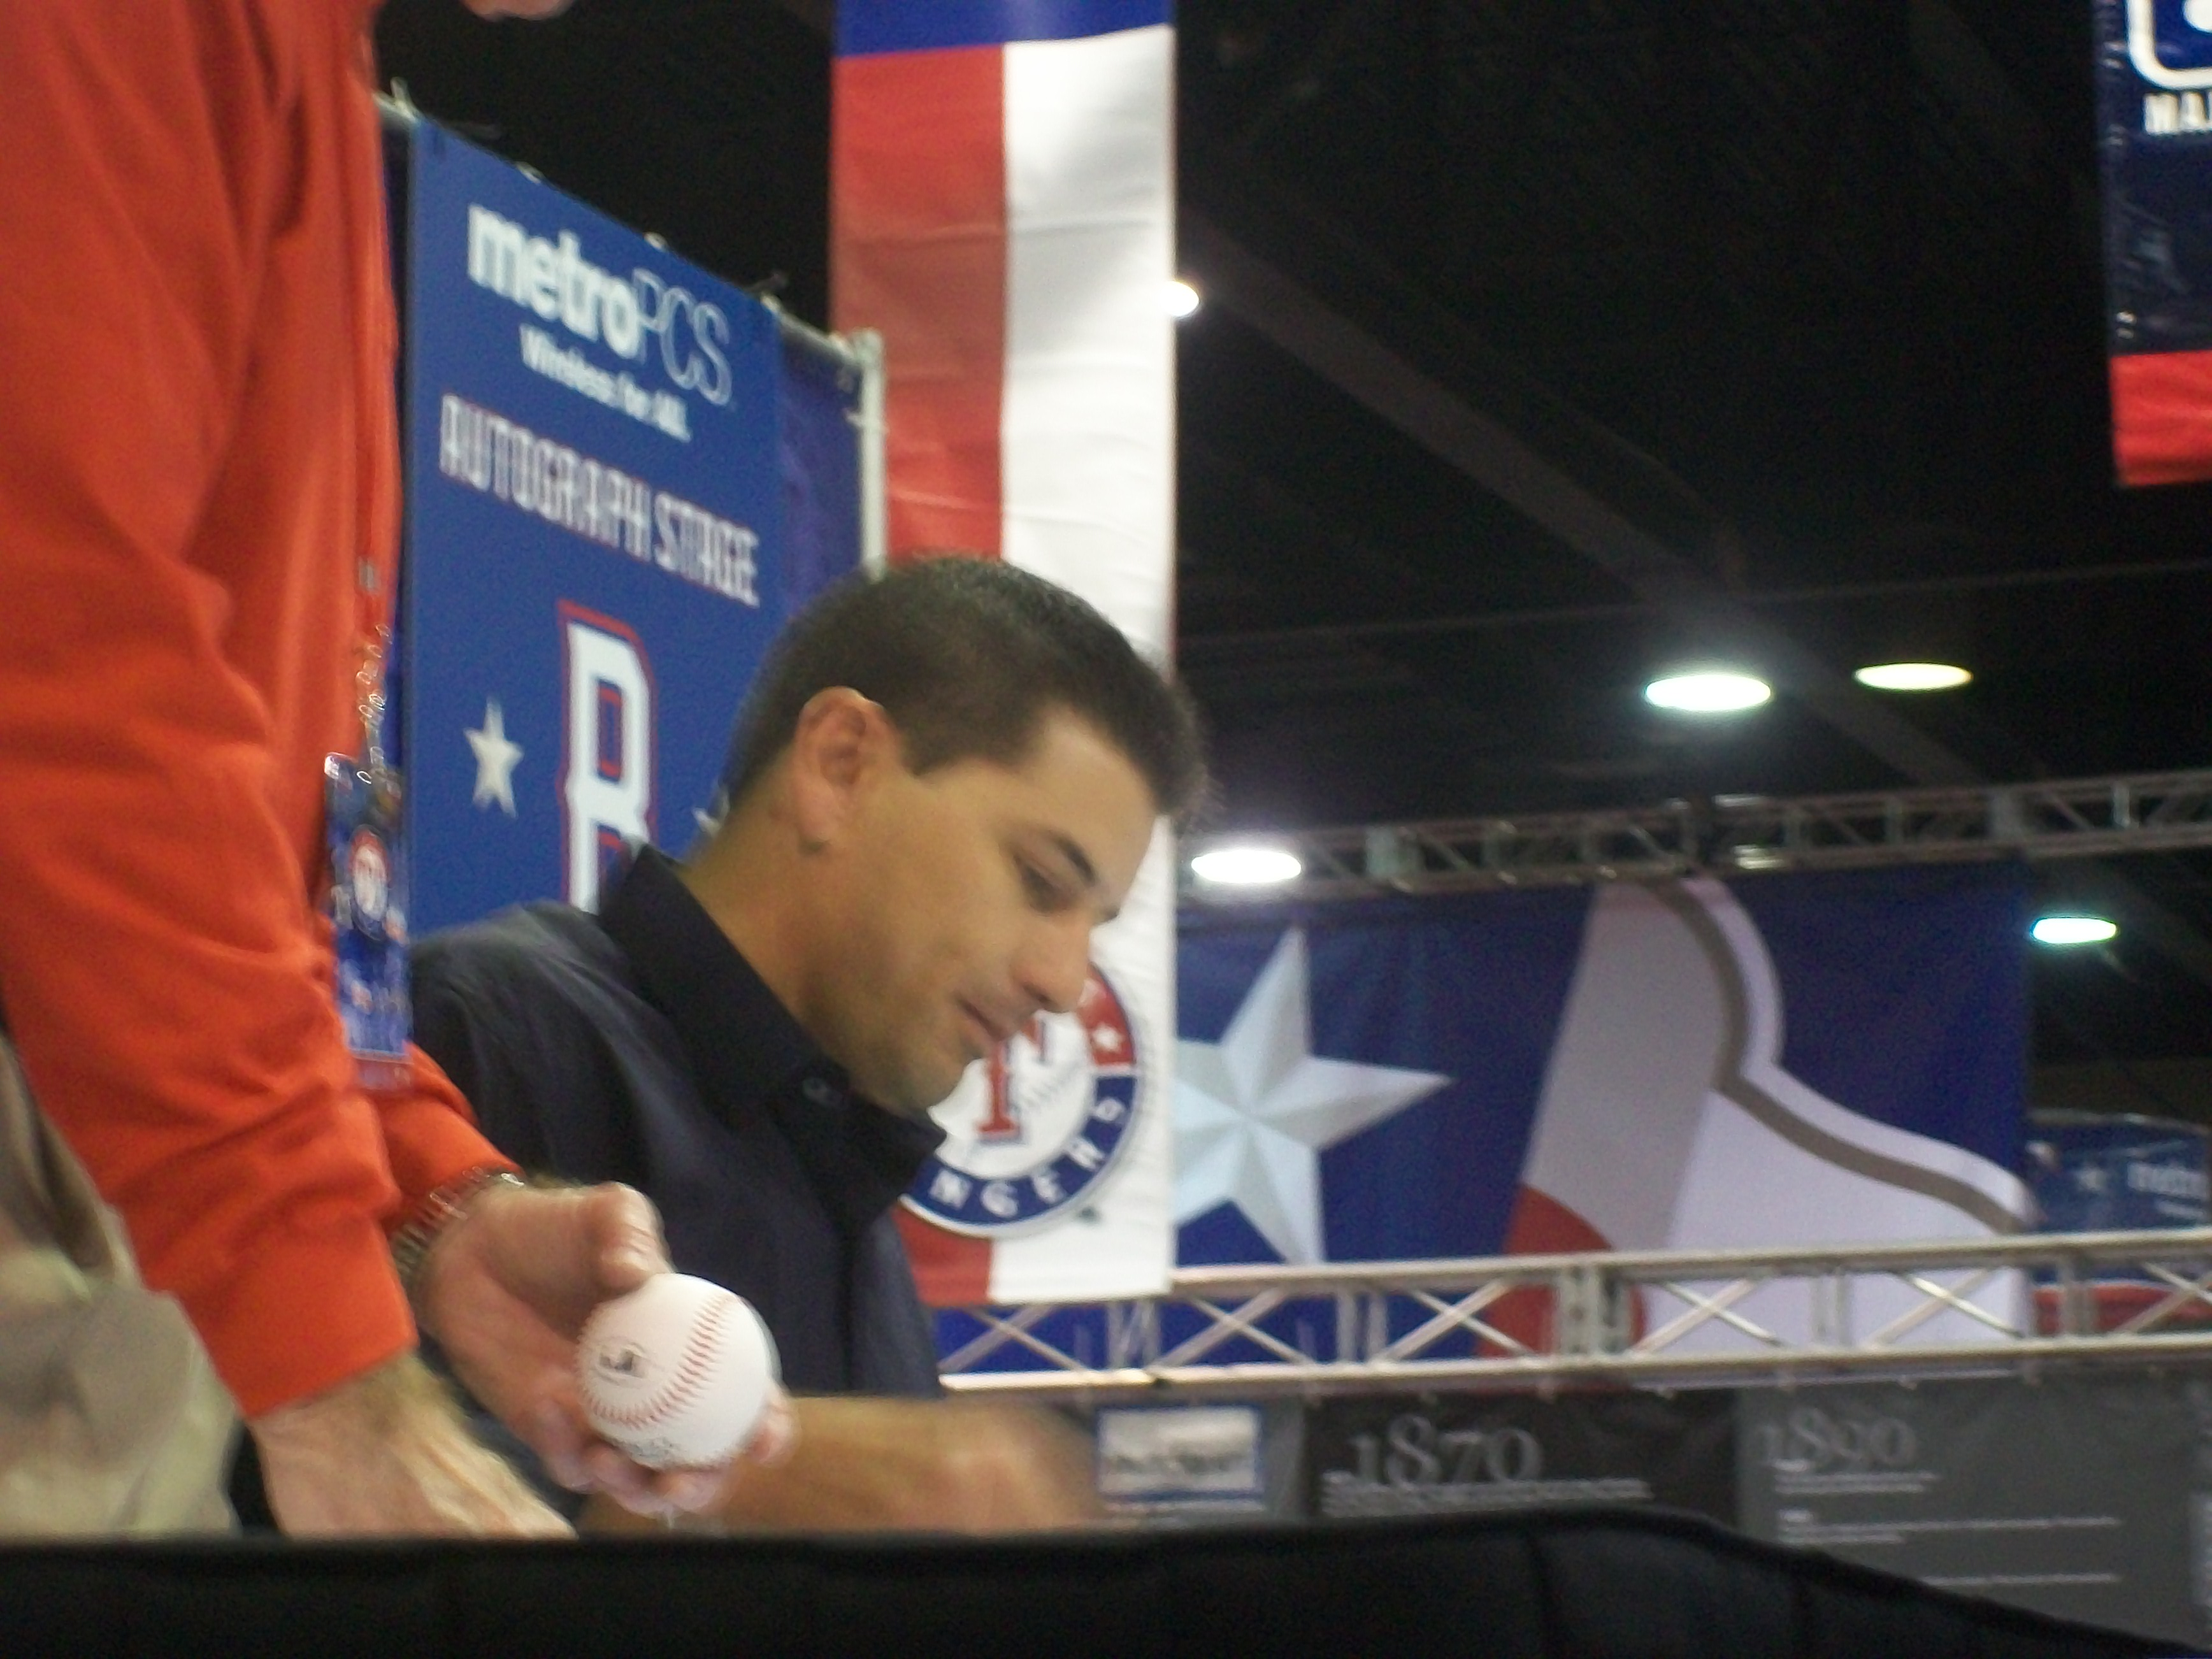 Matt Treanor at Rangers FanFest 2011